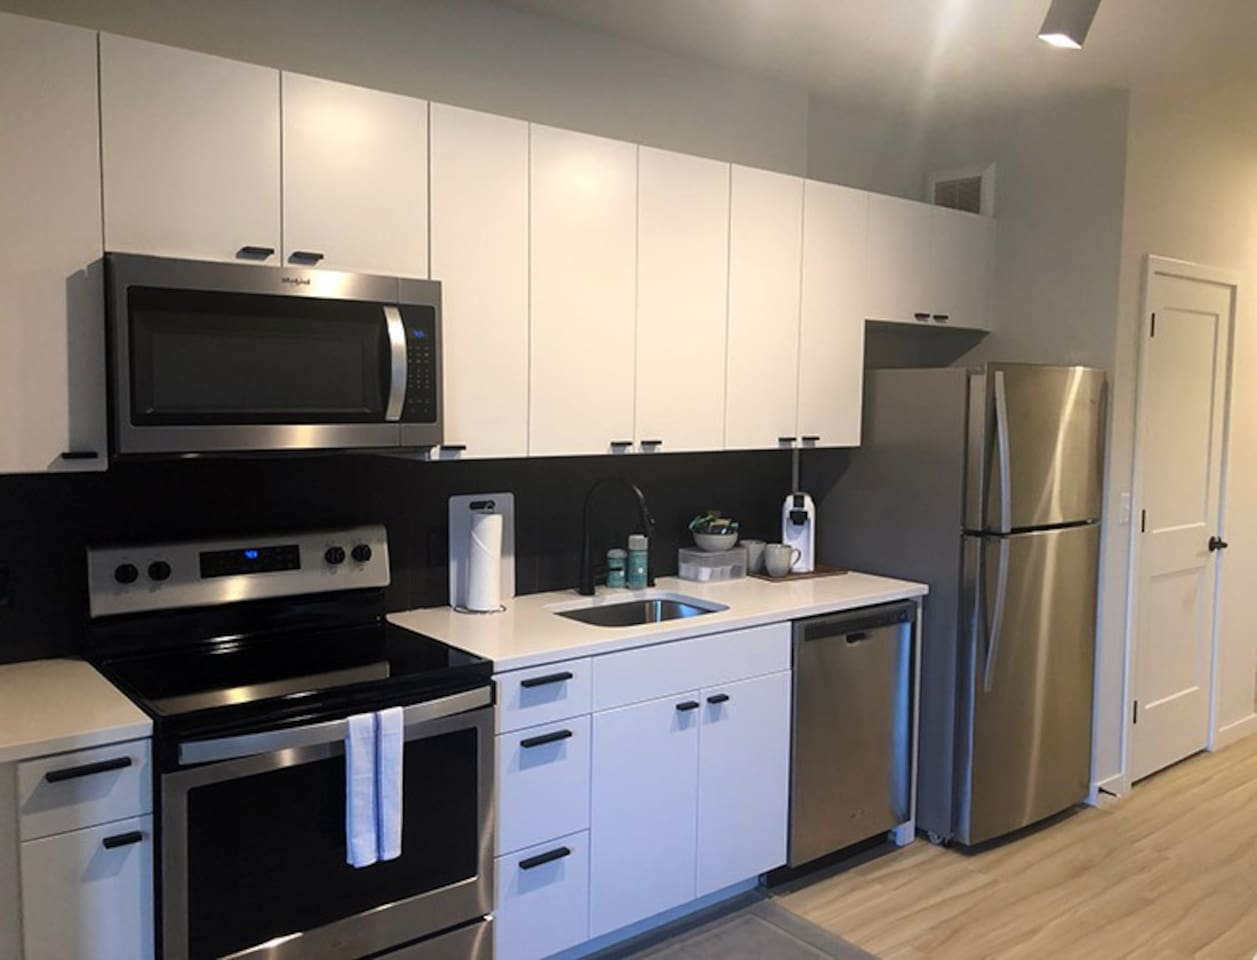 The kitchen is equipped with all of the basics: plates, bowls, mugs, Keurig-like coffee maker, cutlery, a few pots & pans and mixing bowls.